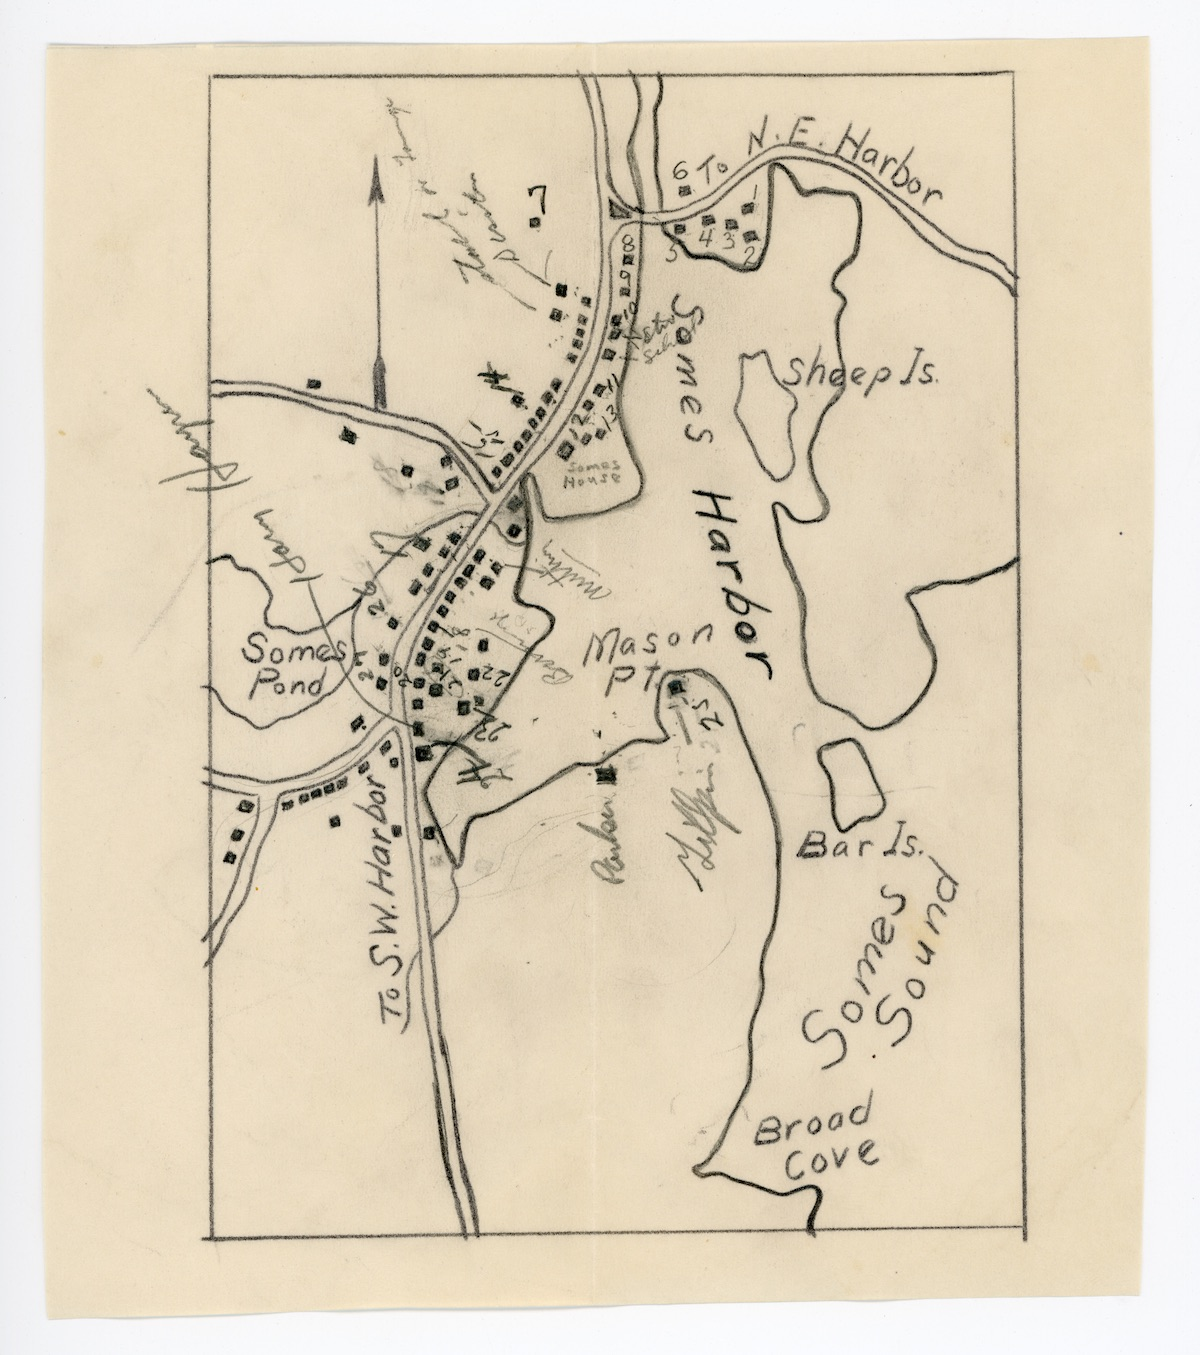 Sketch map of Somesville.